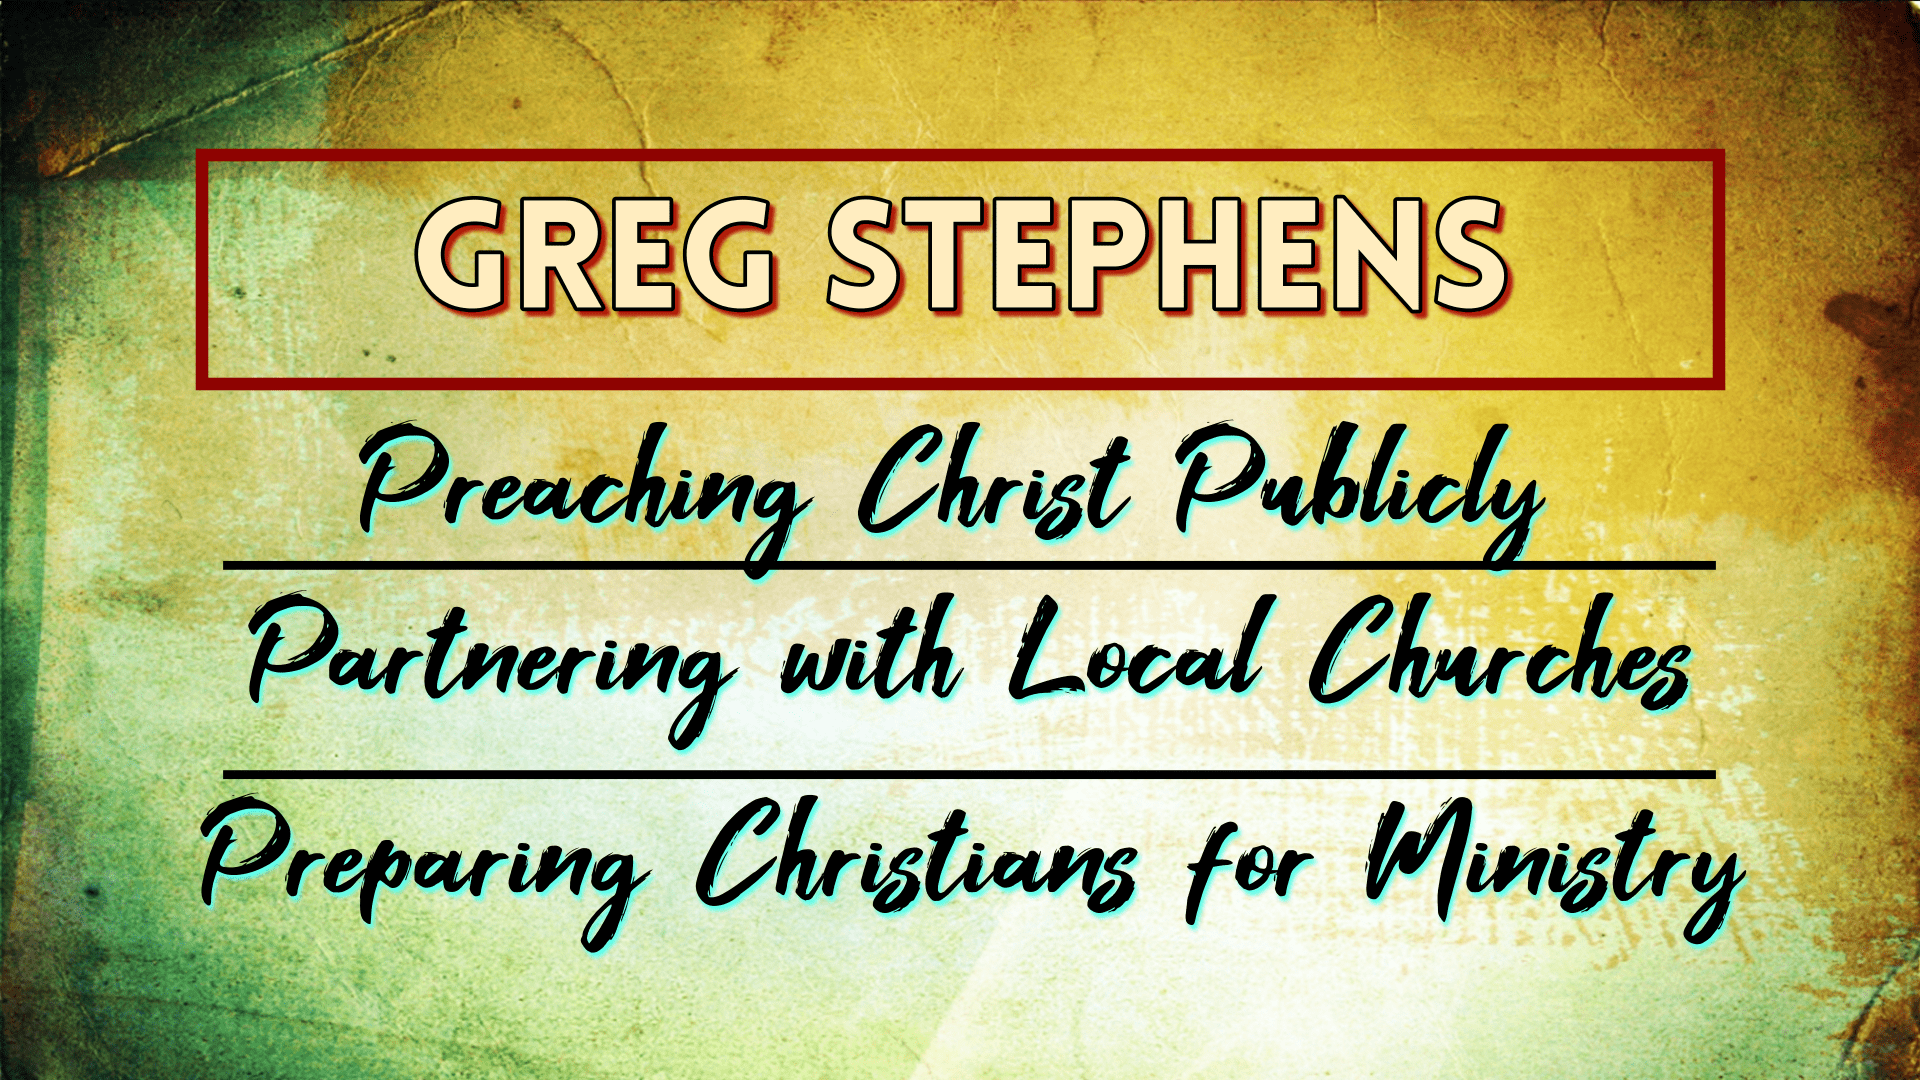 The Gospel of Jesus Christ - Greg Stephens